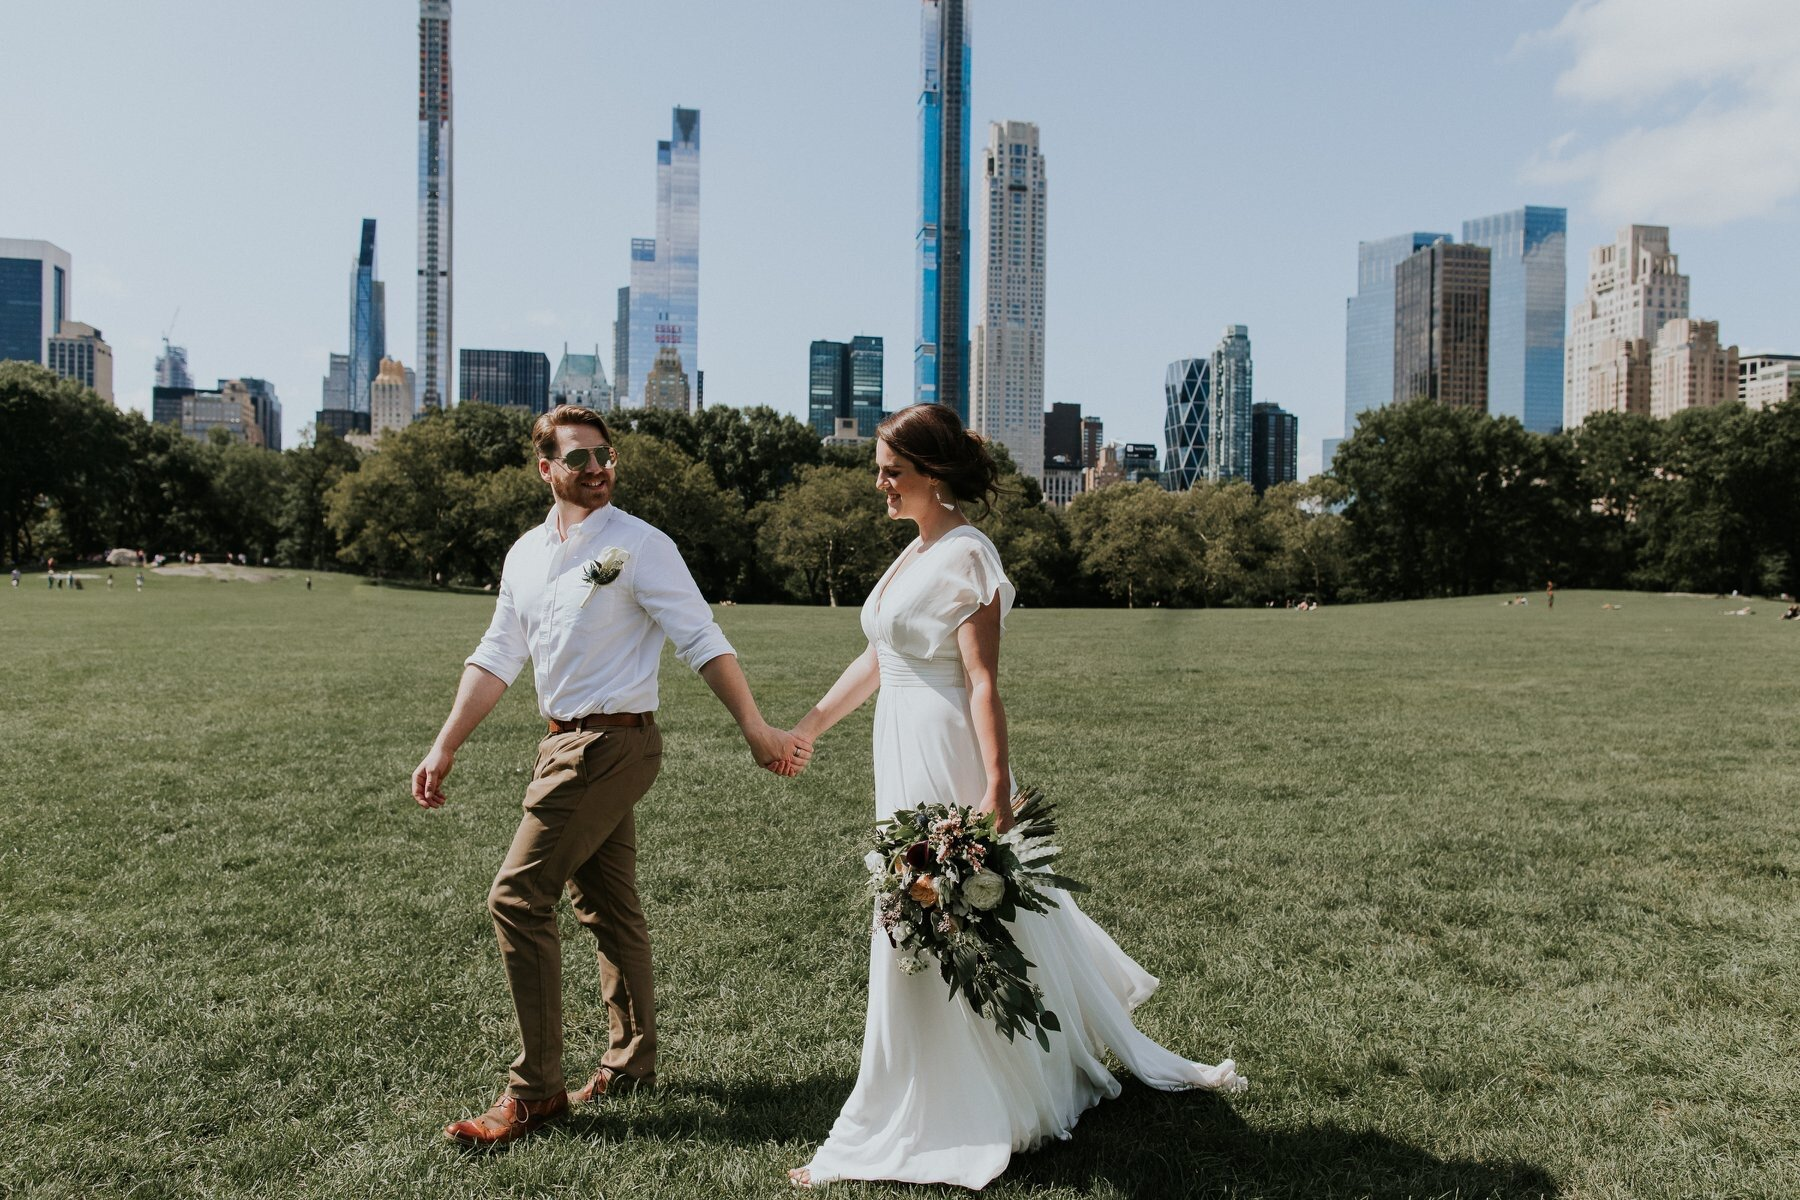 Married in NYC Central Park - Amy & Mark